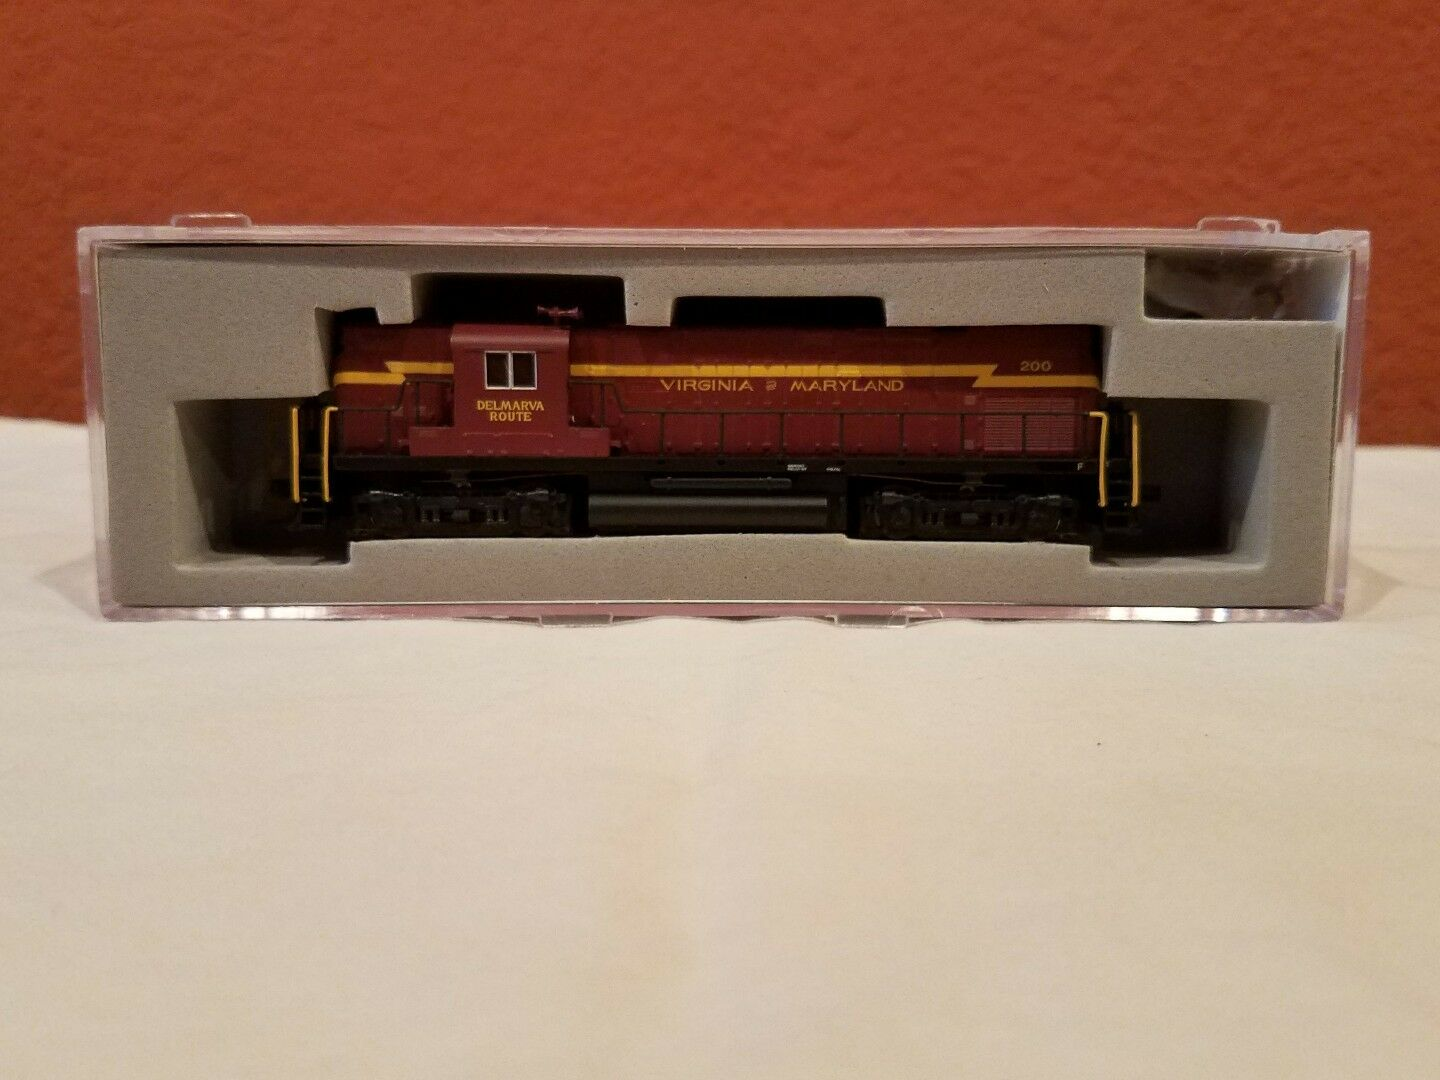 N SCALE ATLAS LOCO  40000152 C420 VIRGINIA & MARYLAND  200 DCC EQUIPPED NEW